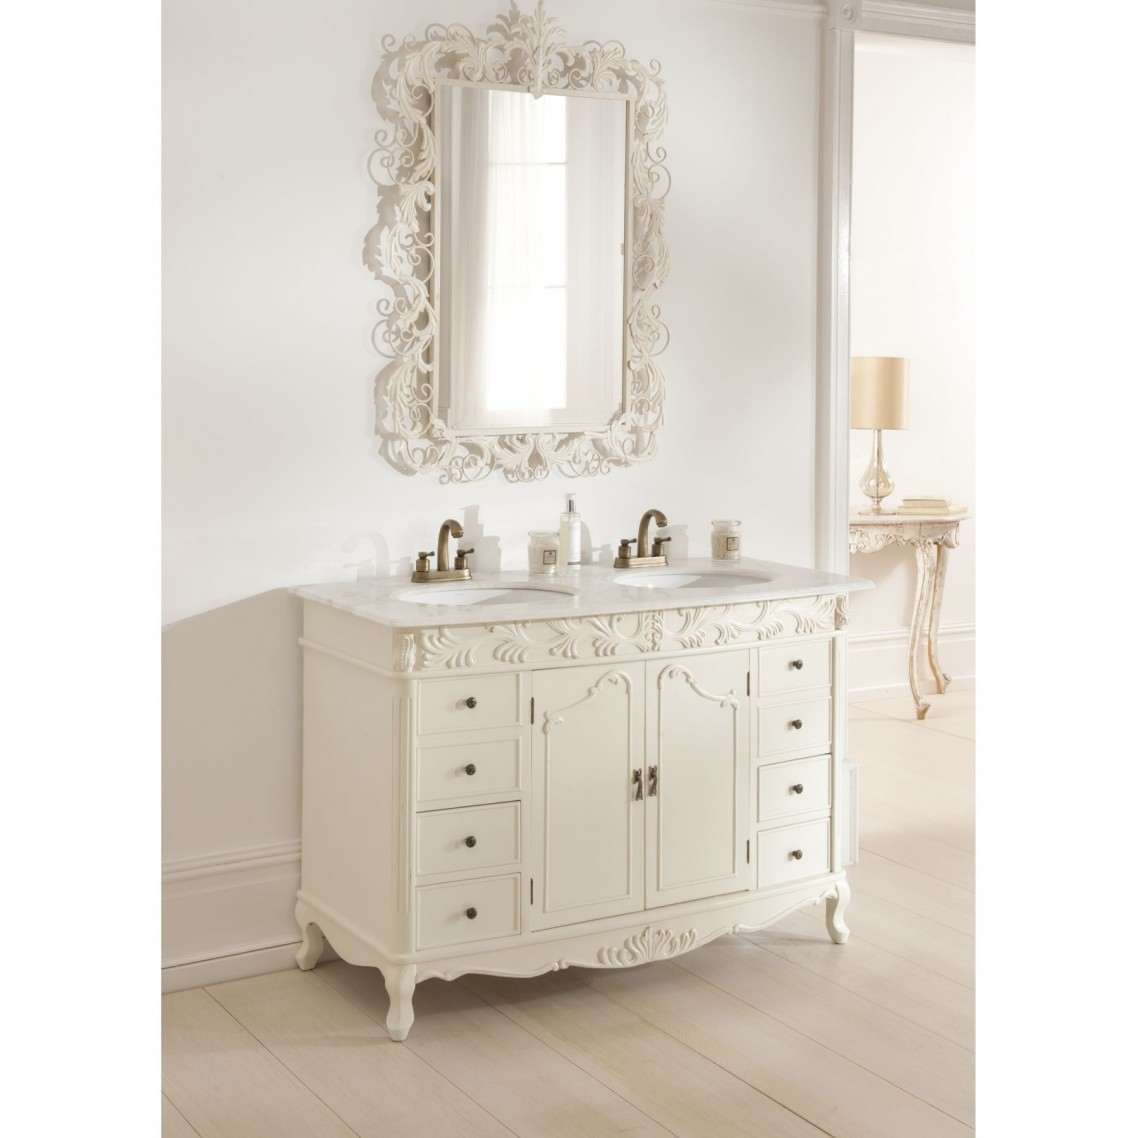 French Style Bathroom Mirrors Home With Regard To French Style Bathroom Mirror (Image 11 of 15)